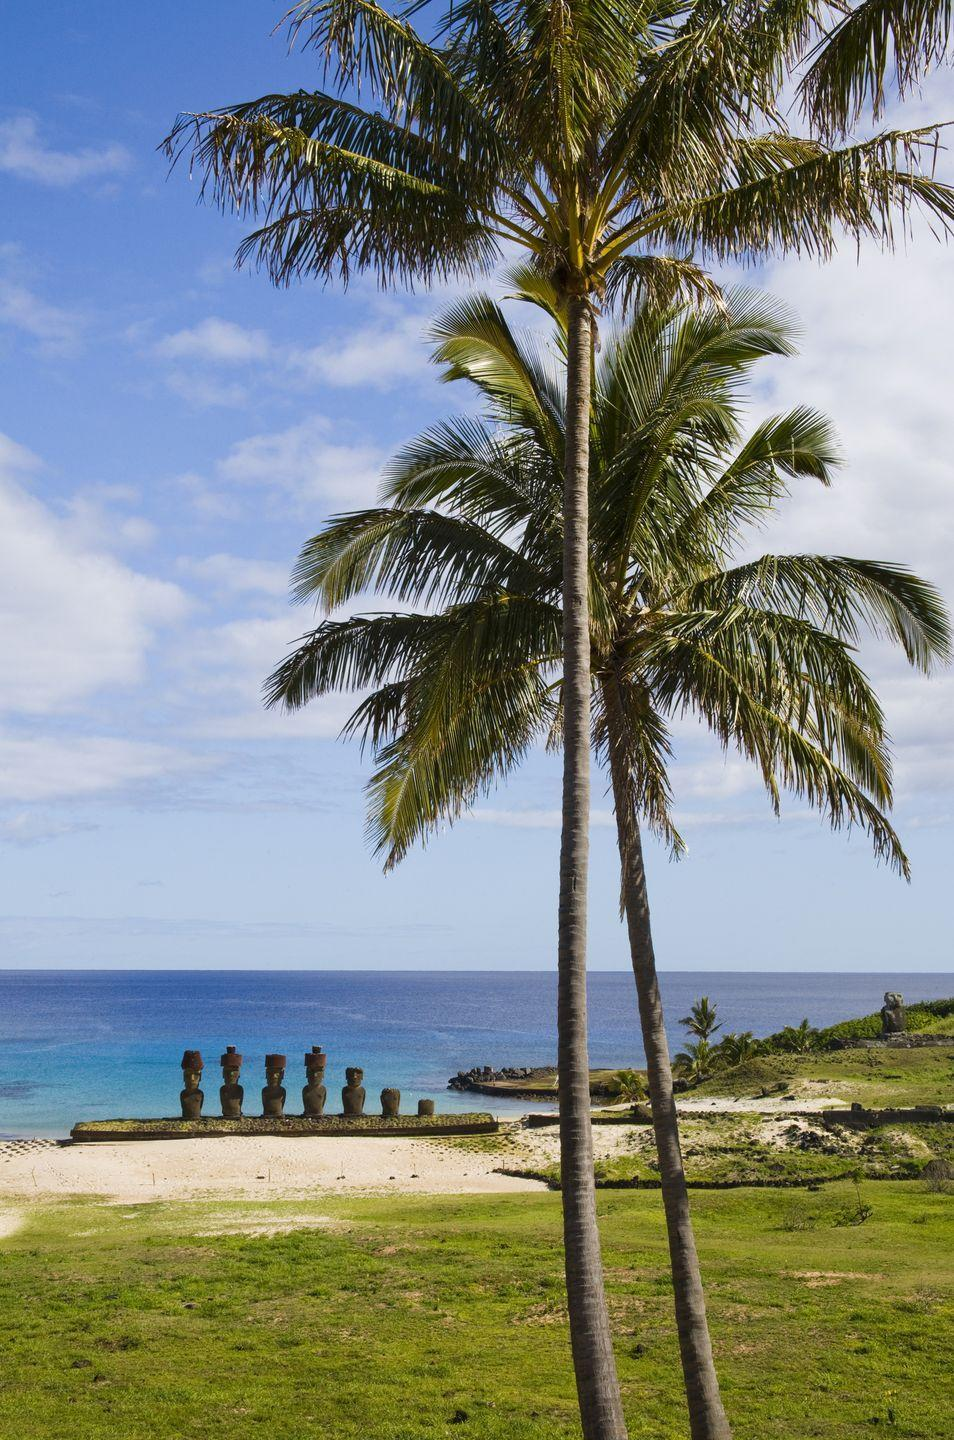 <p>An unusual site on the otherwise rocky coast of Easter Island, the white sand beach at Anakena is also home to several Maoi statues carved by the Rapa Nui people.</p>